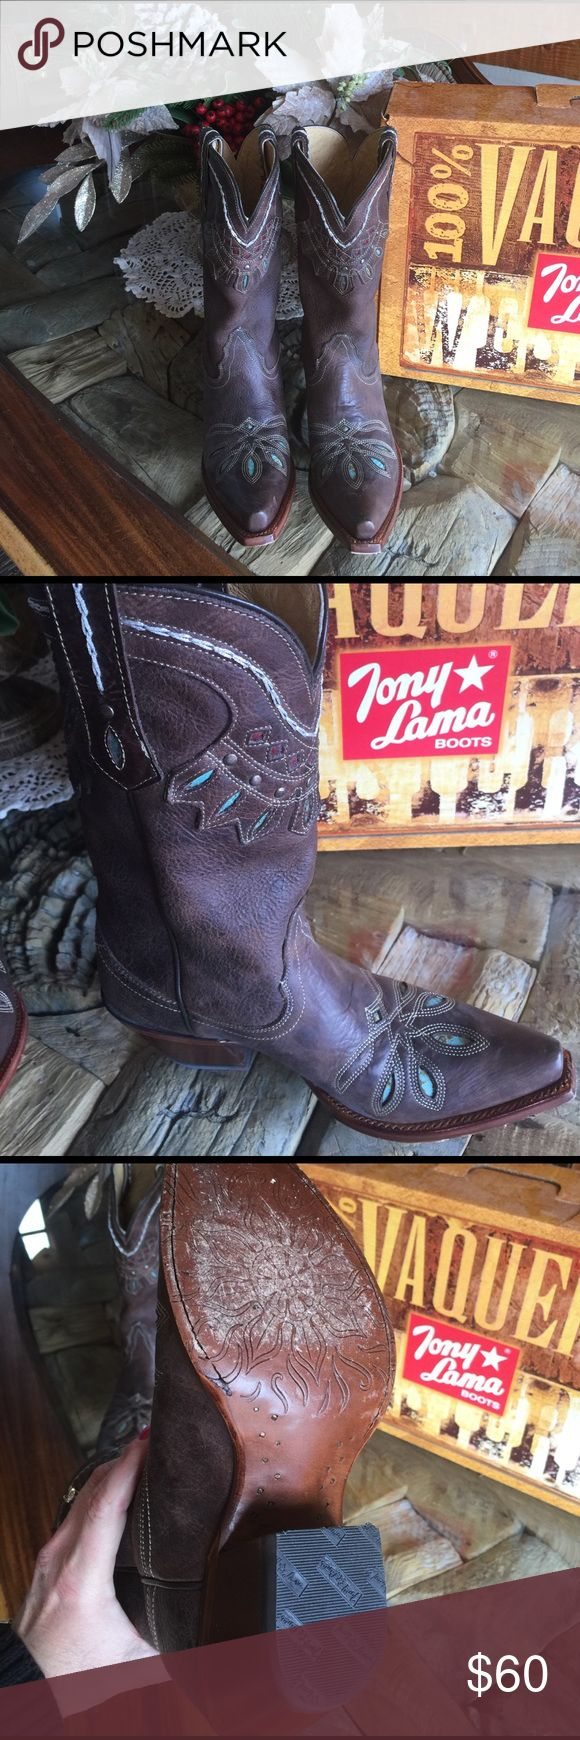 Tony lama boots size 7 Tony lama  boots .  Size 7.  Worn once .. love these boots just have too many.. new in box ... Tony Lama Shoes Heeled Boots